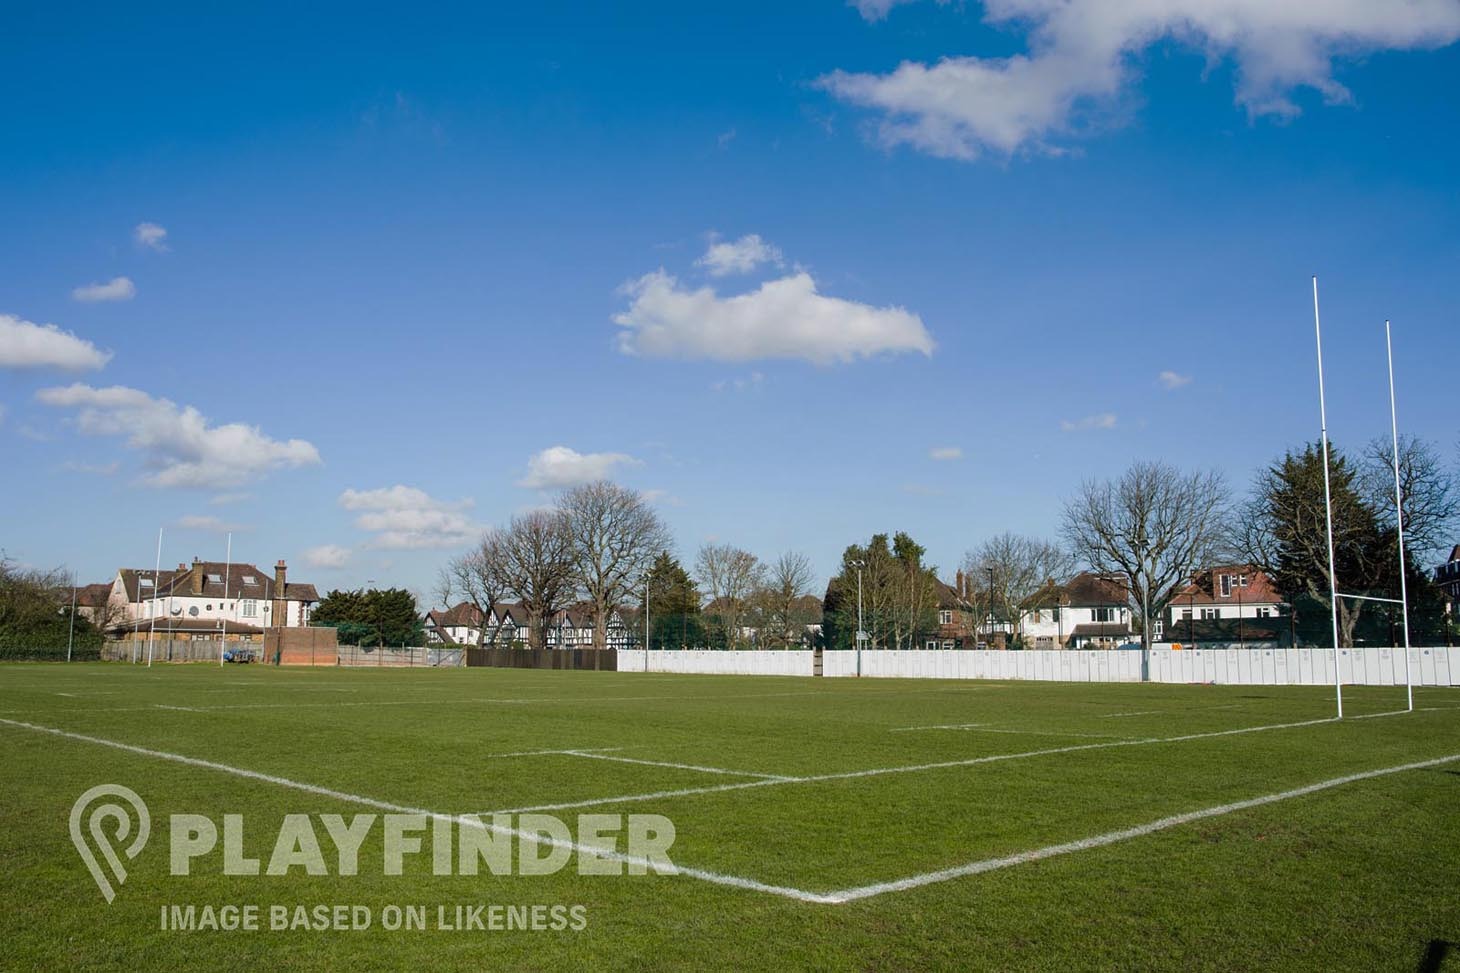 Didsbury Sports Ground Union | Grass rugby pitch